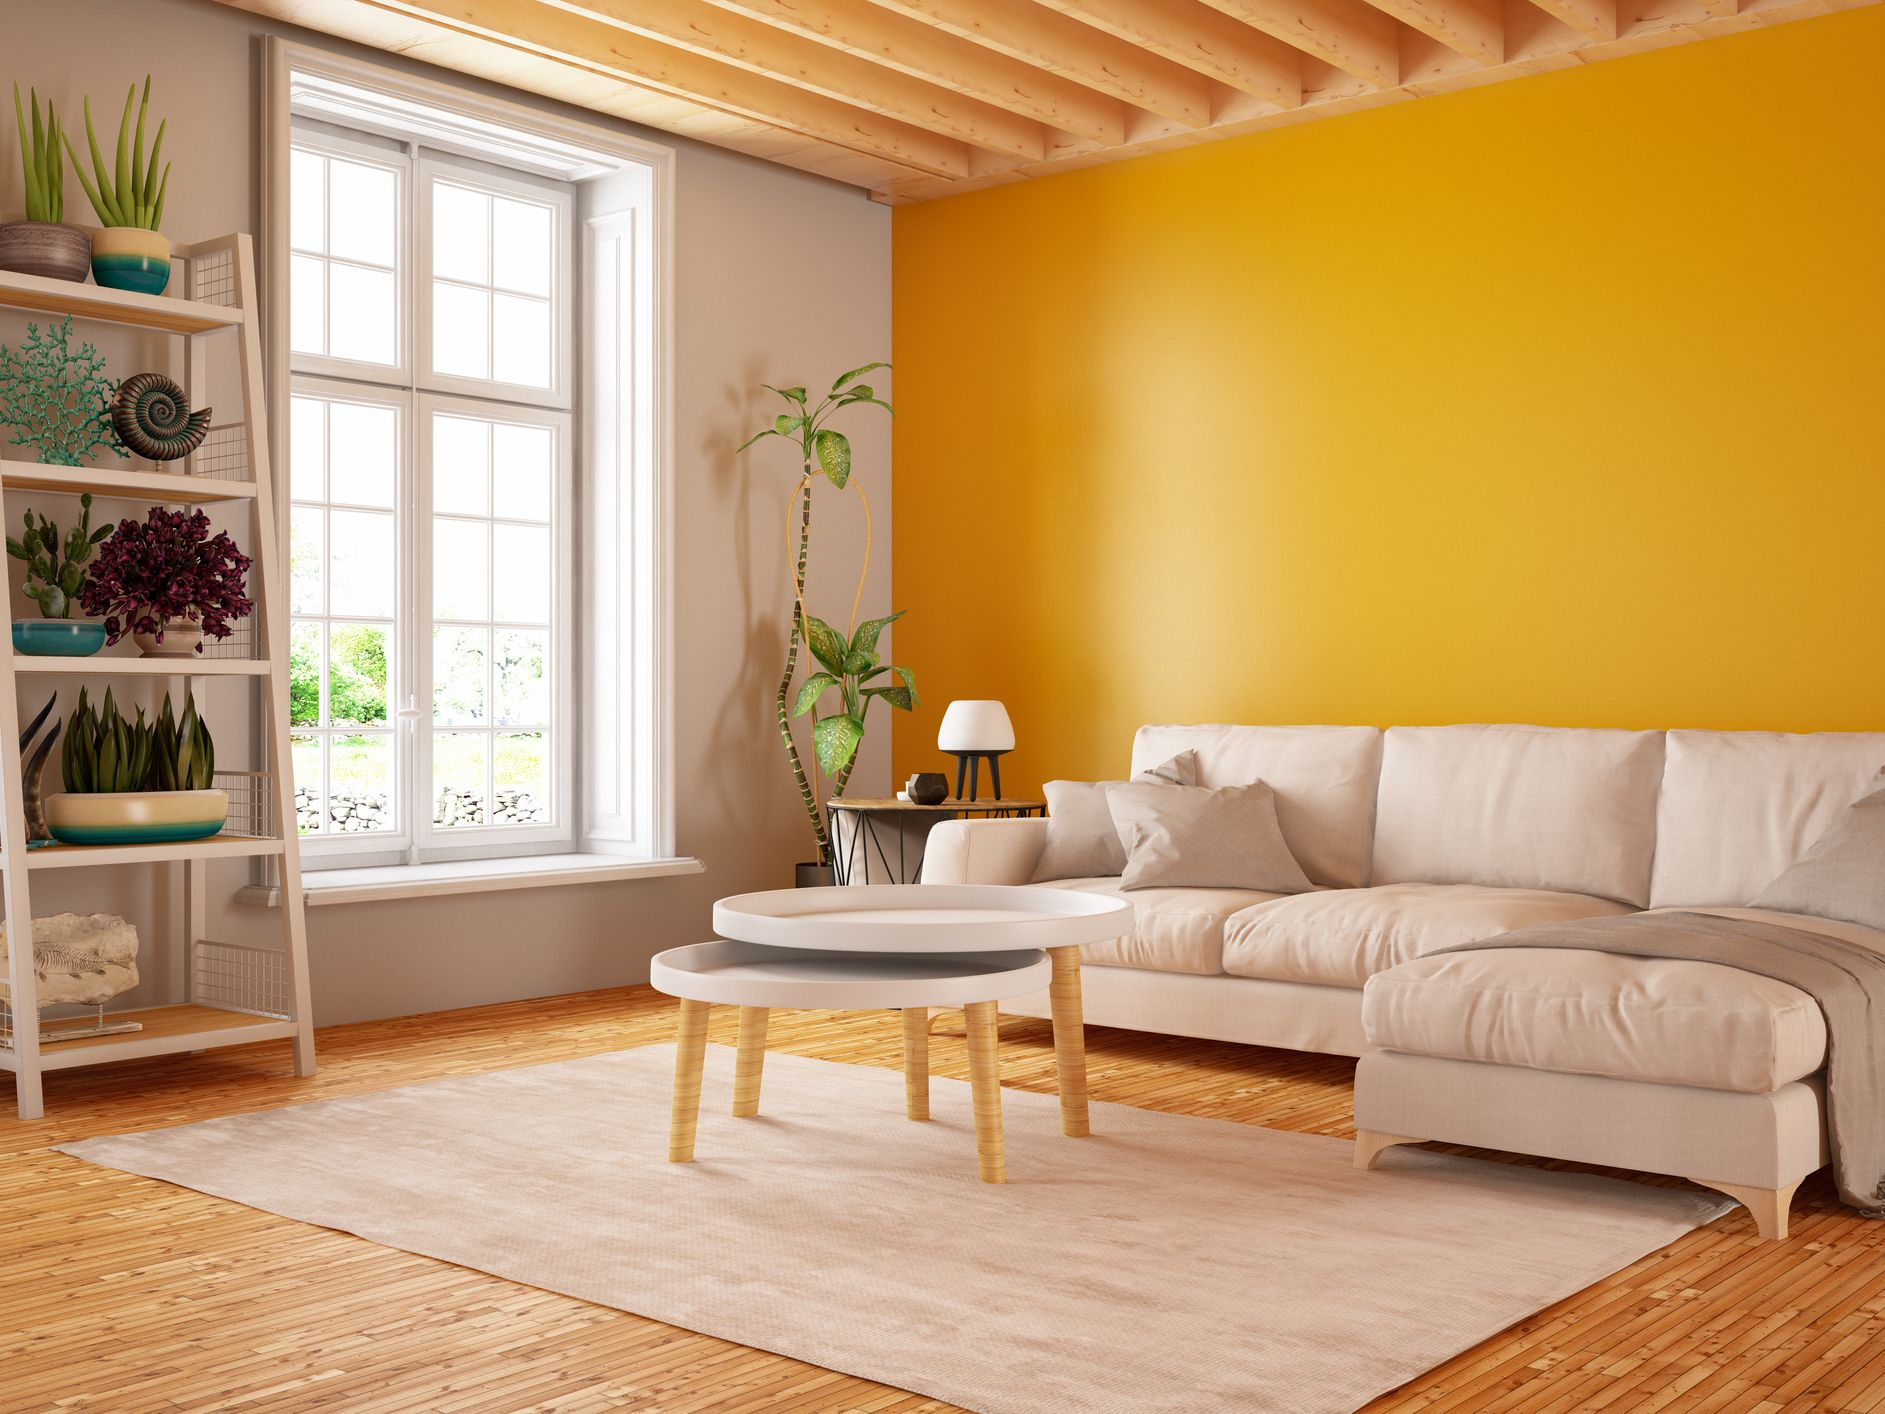 Eggshell Paint What Is It And When To Use It